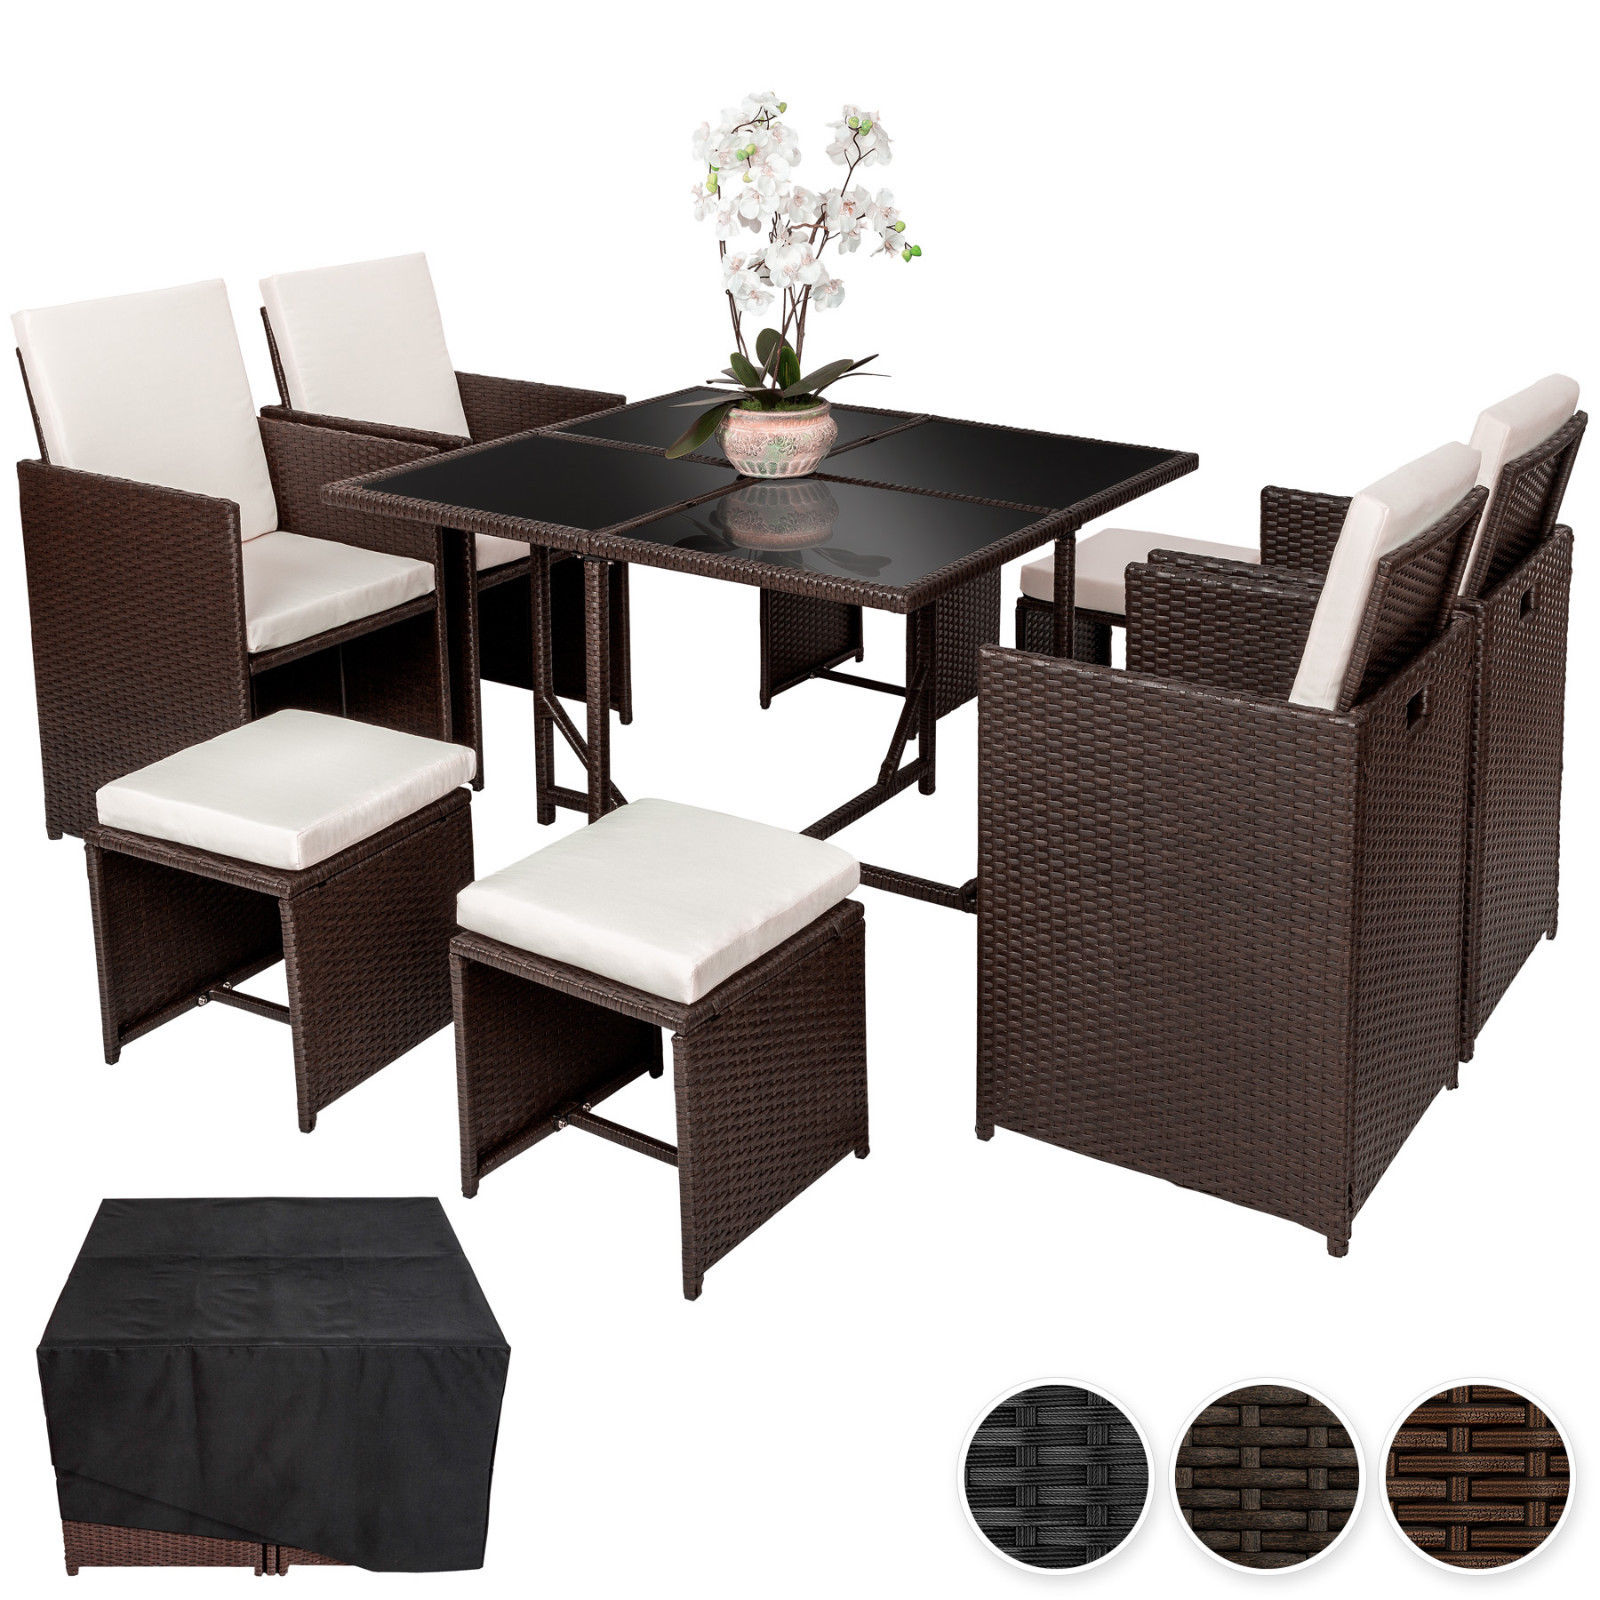 Rattan Garden Furnishings Set Cube Consuming Set Wicker eight Seater Desk Cushions